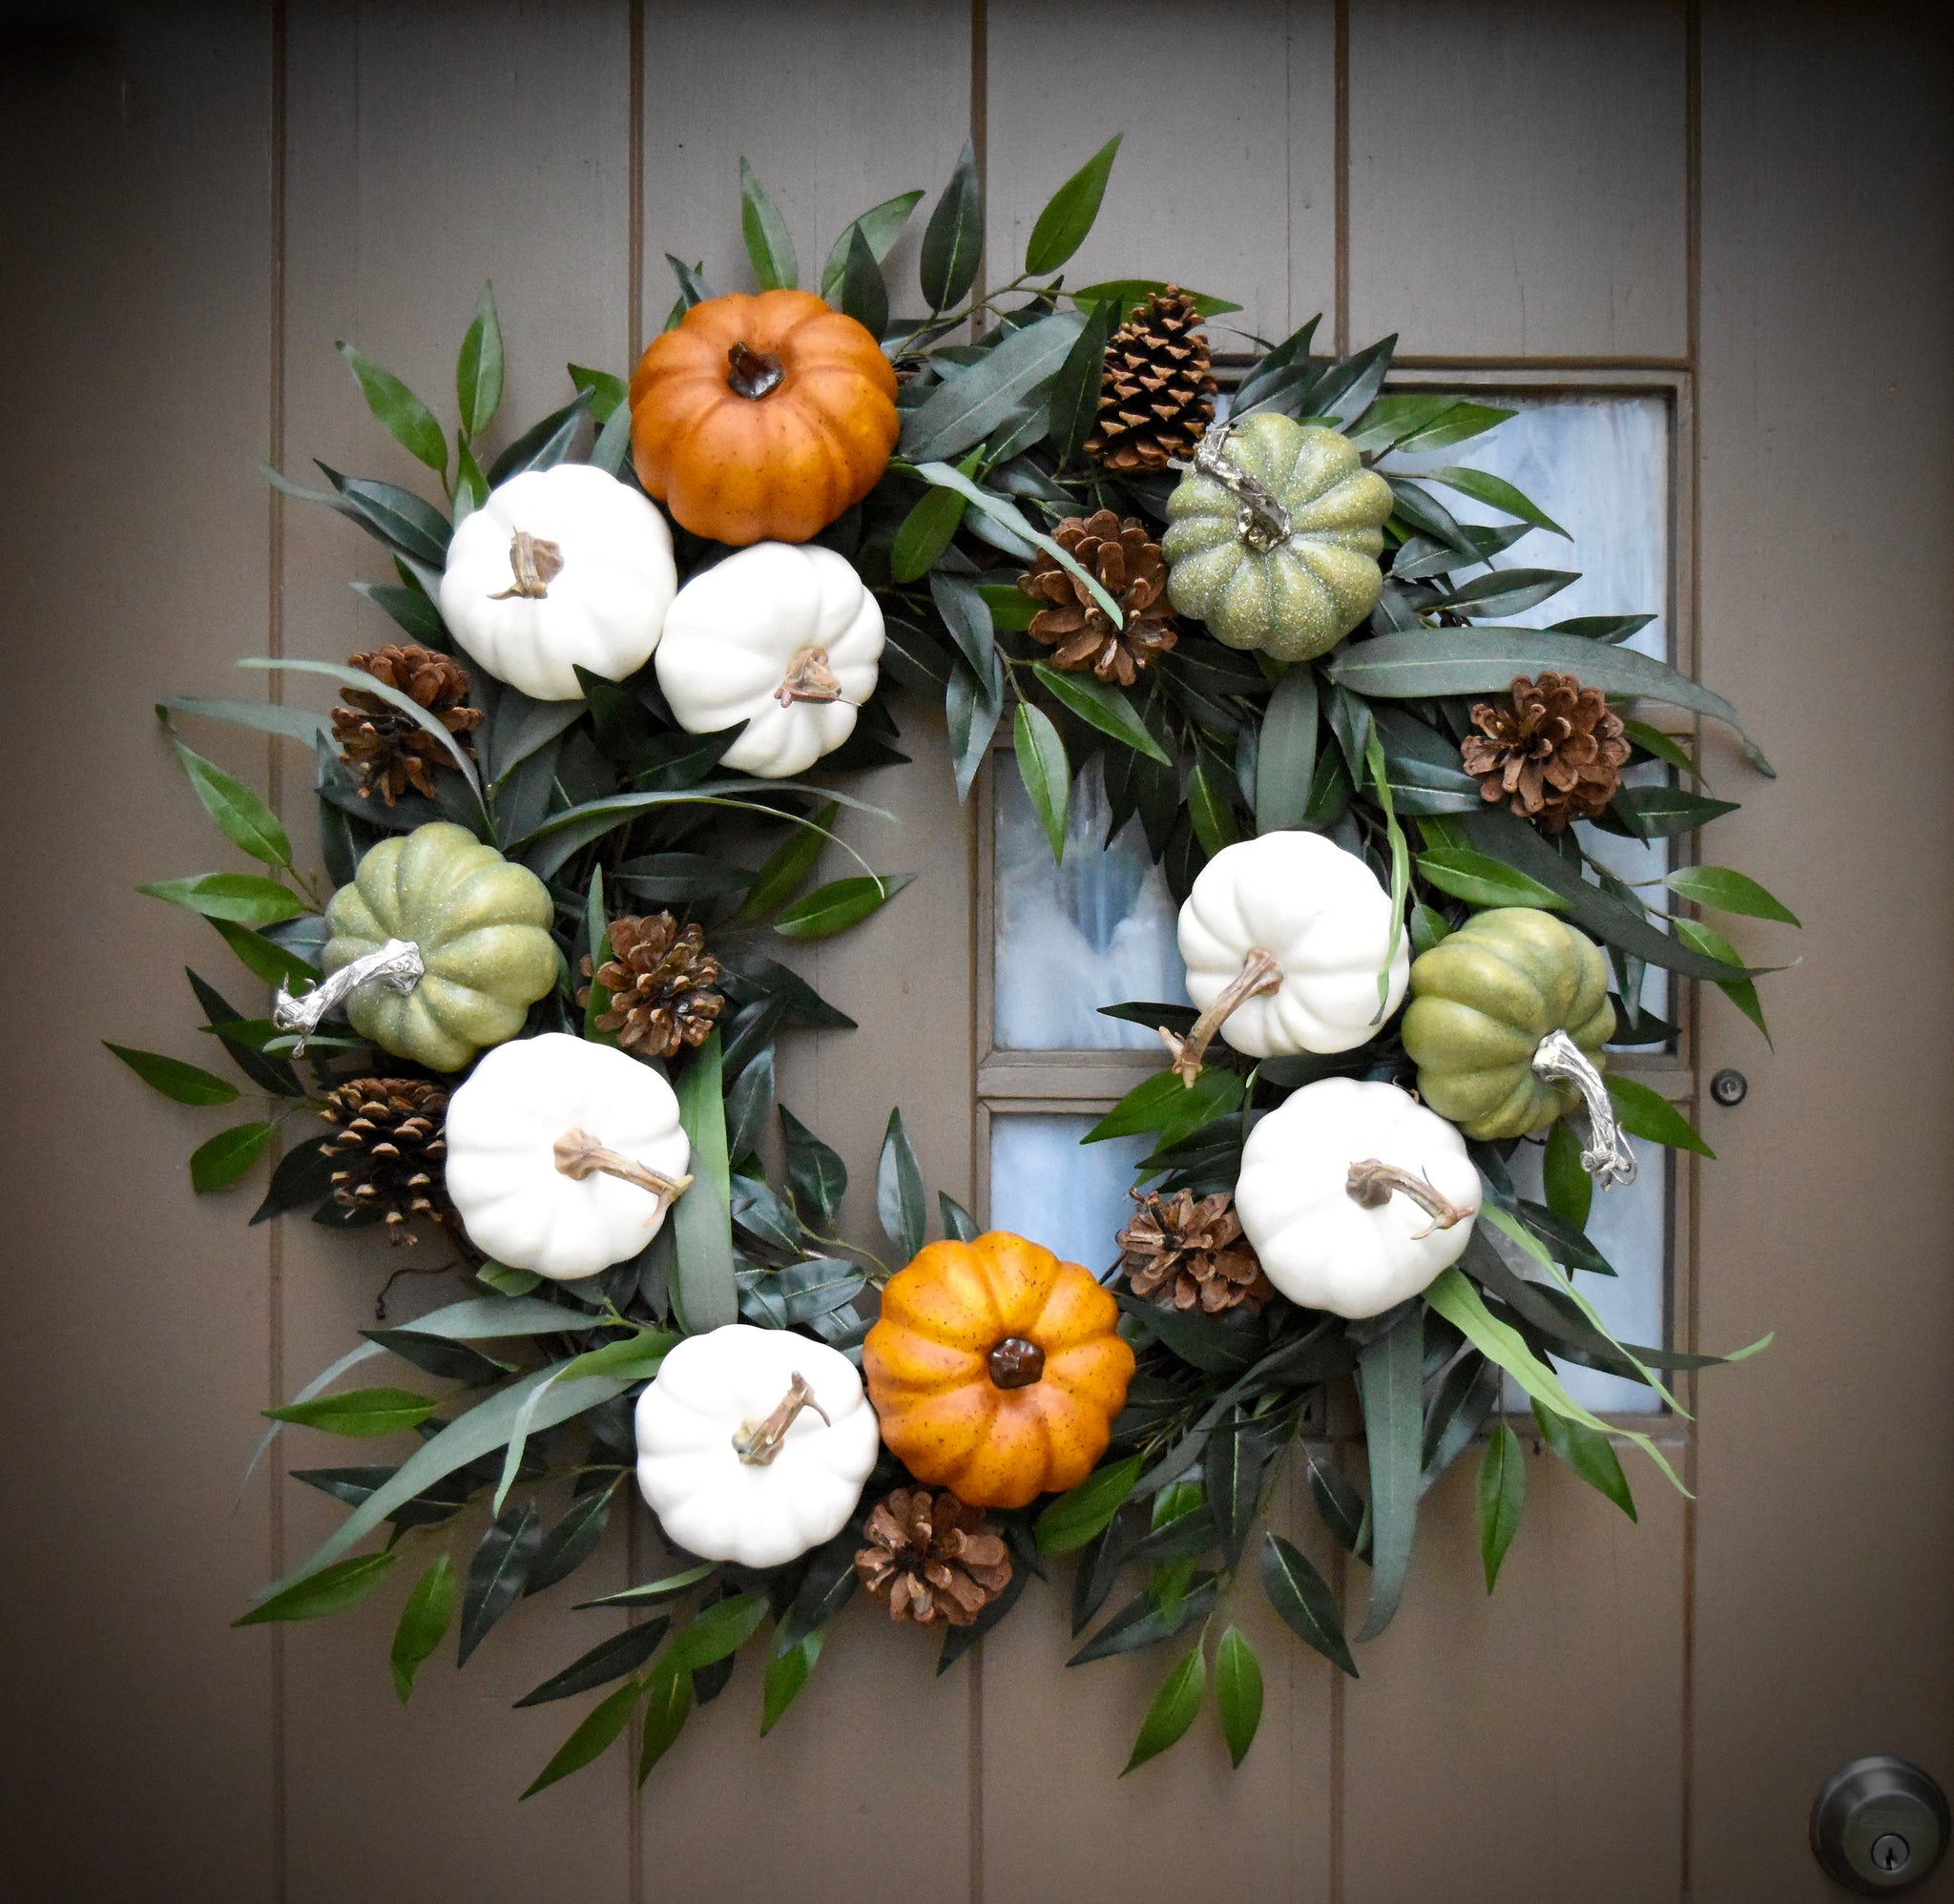 Pumpkin Wreath - Eucalyptus Wreath - Fall Wreath - Autumn Wreath - Fall Decor